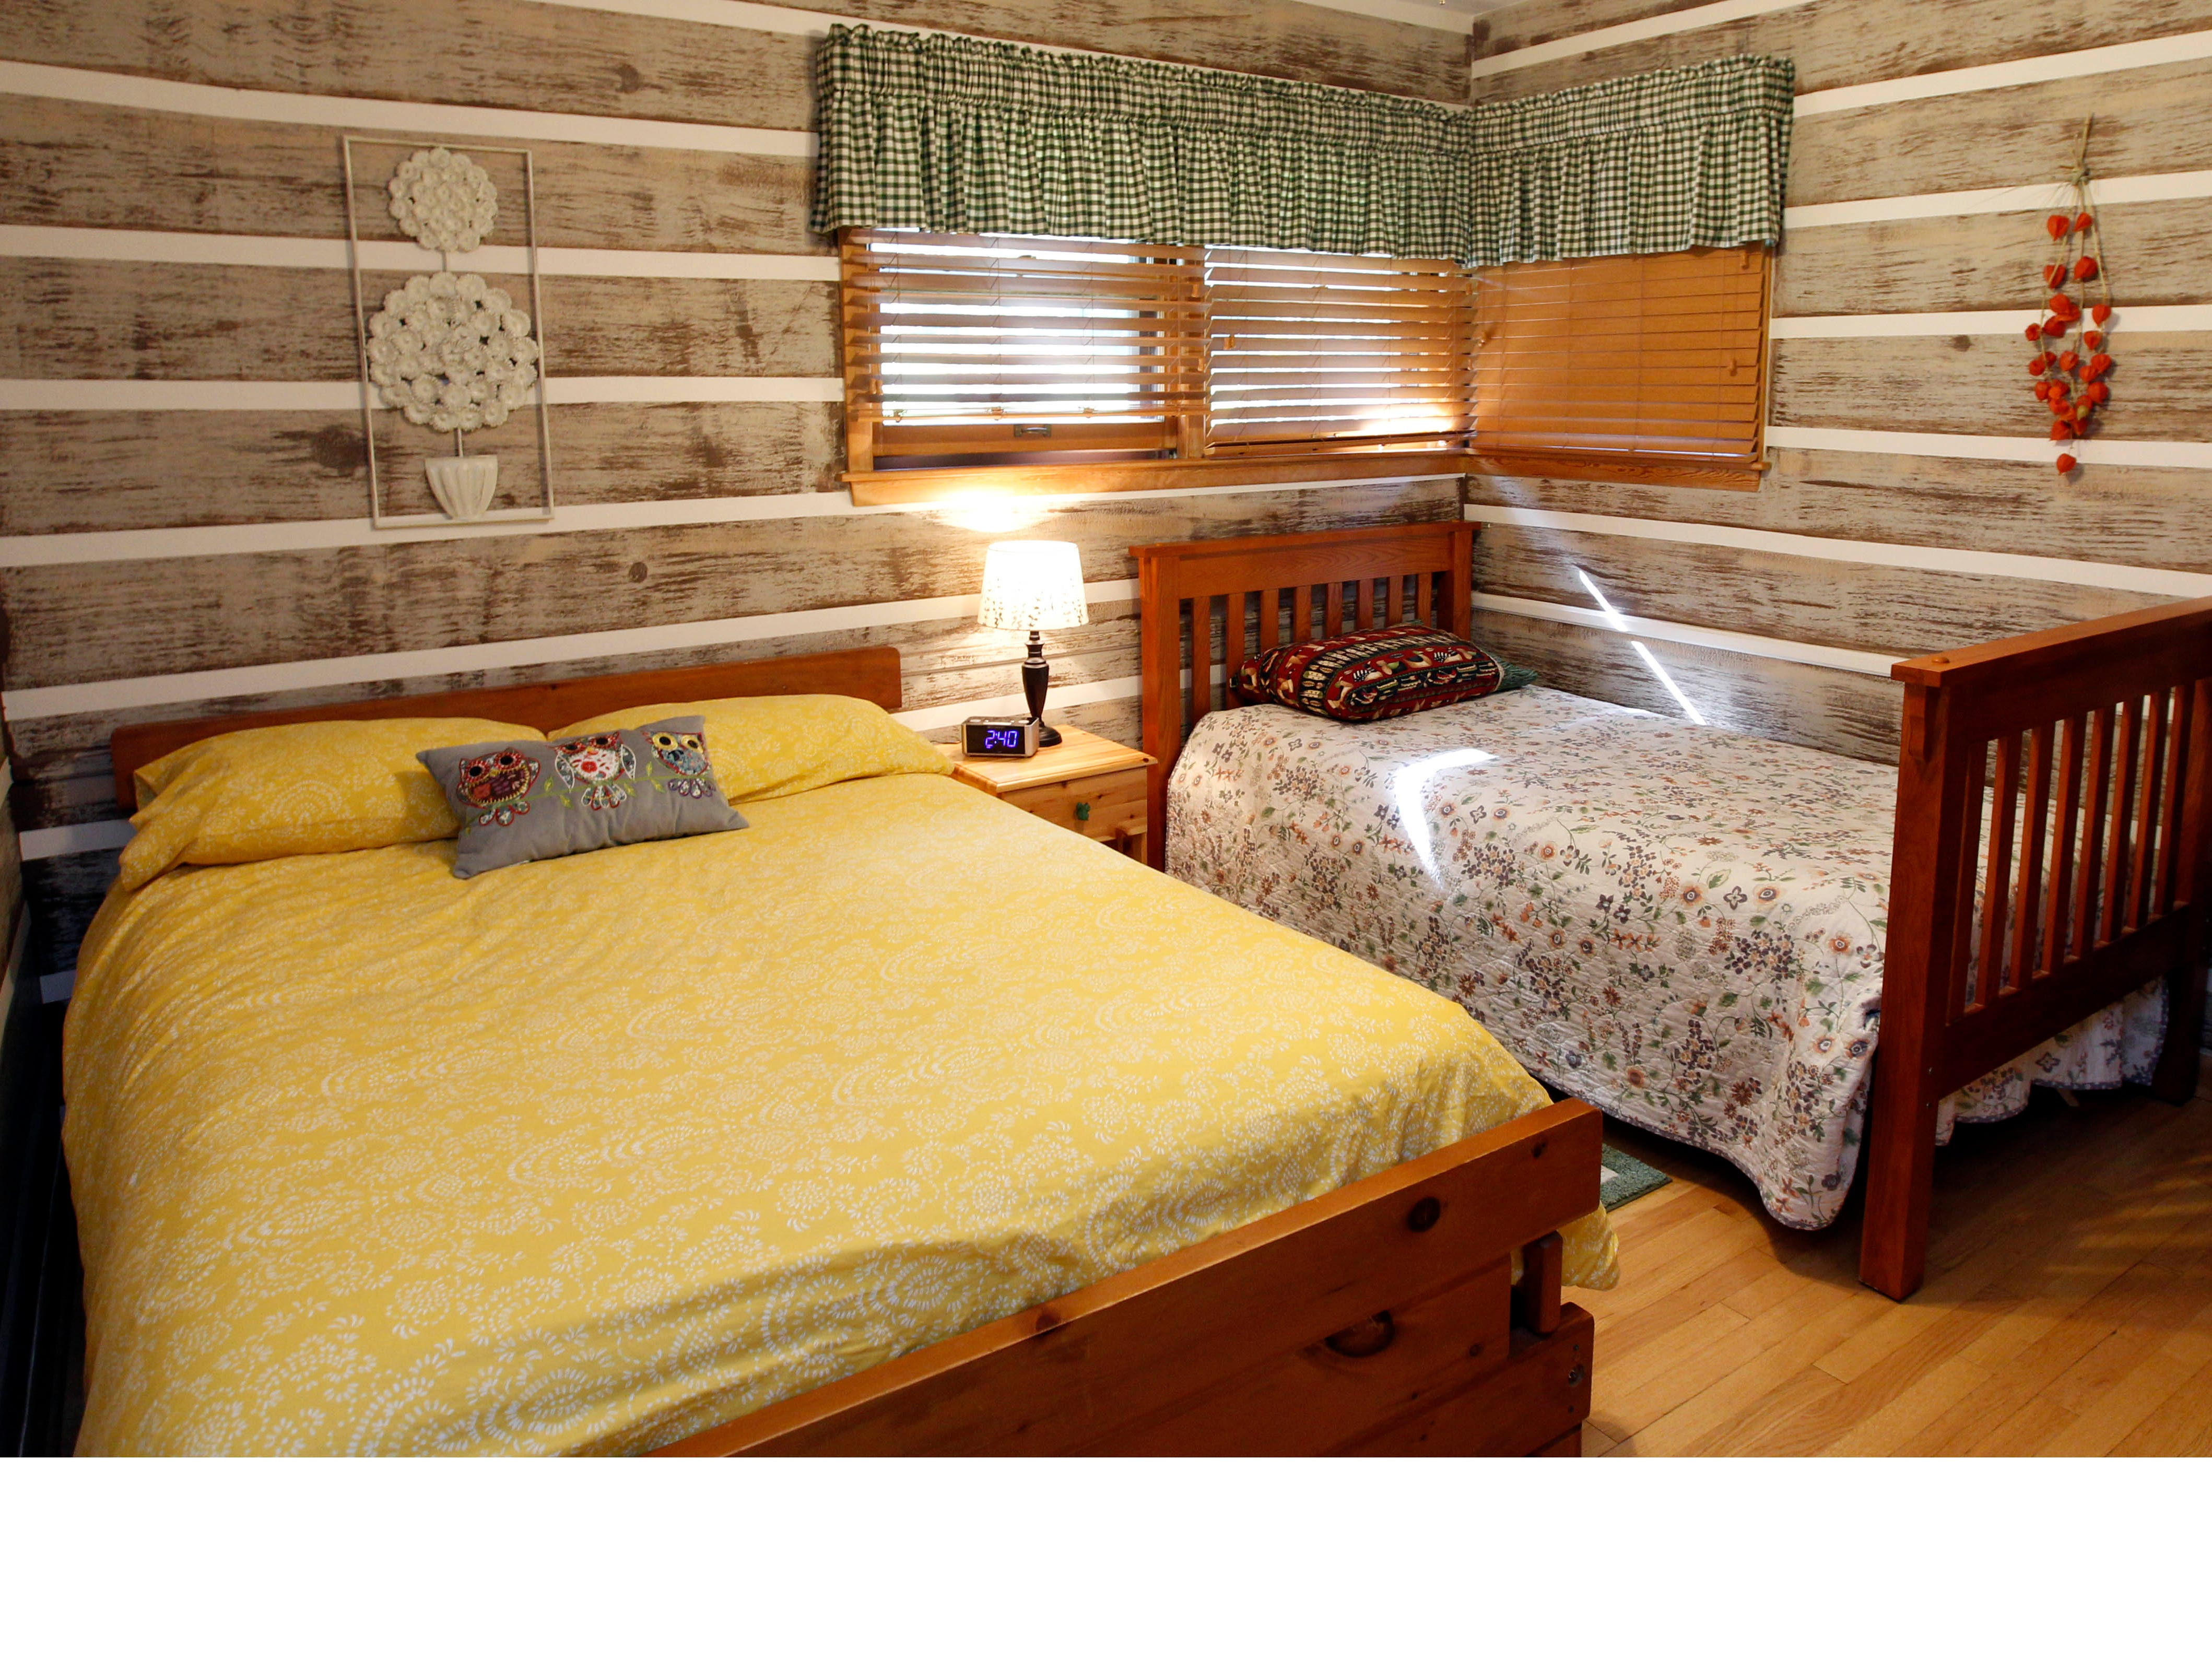 The log cabin look in this bedroom was created with several layers of paint.